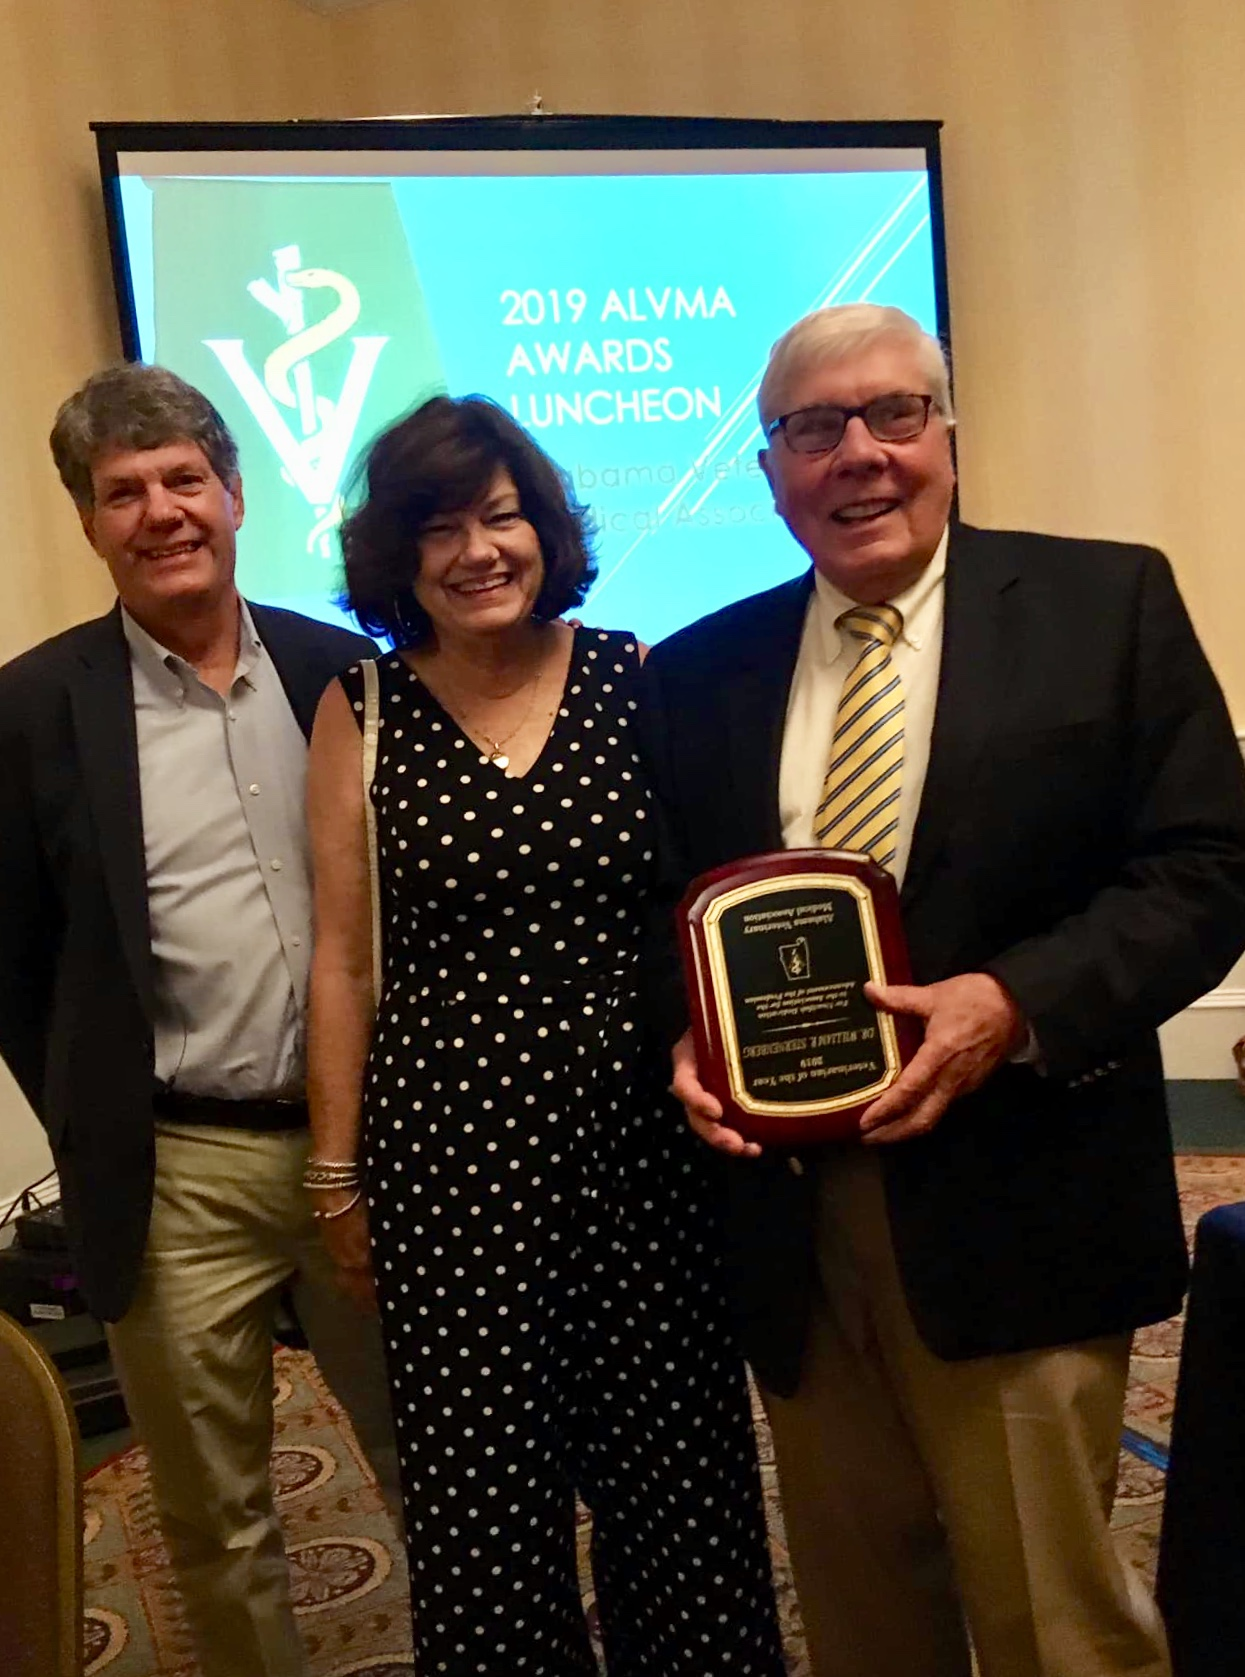 Dr. Sternenberg - Veterinarian of the Year from Alabama Veterinary Medical Association